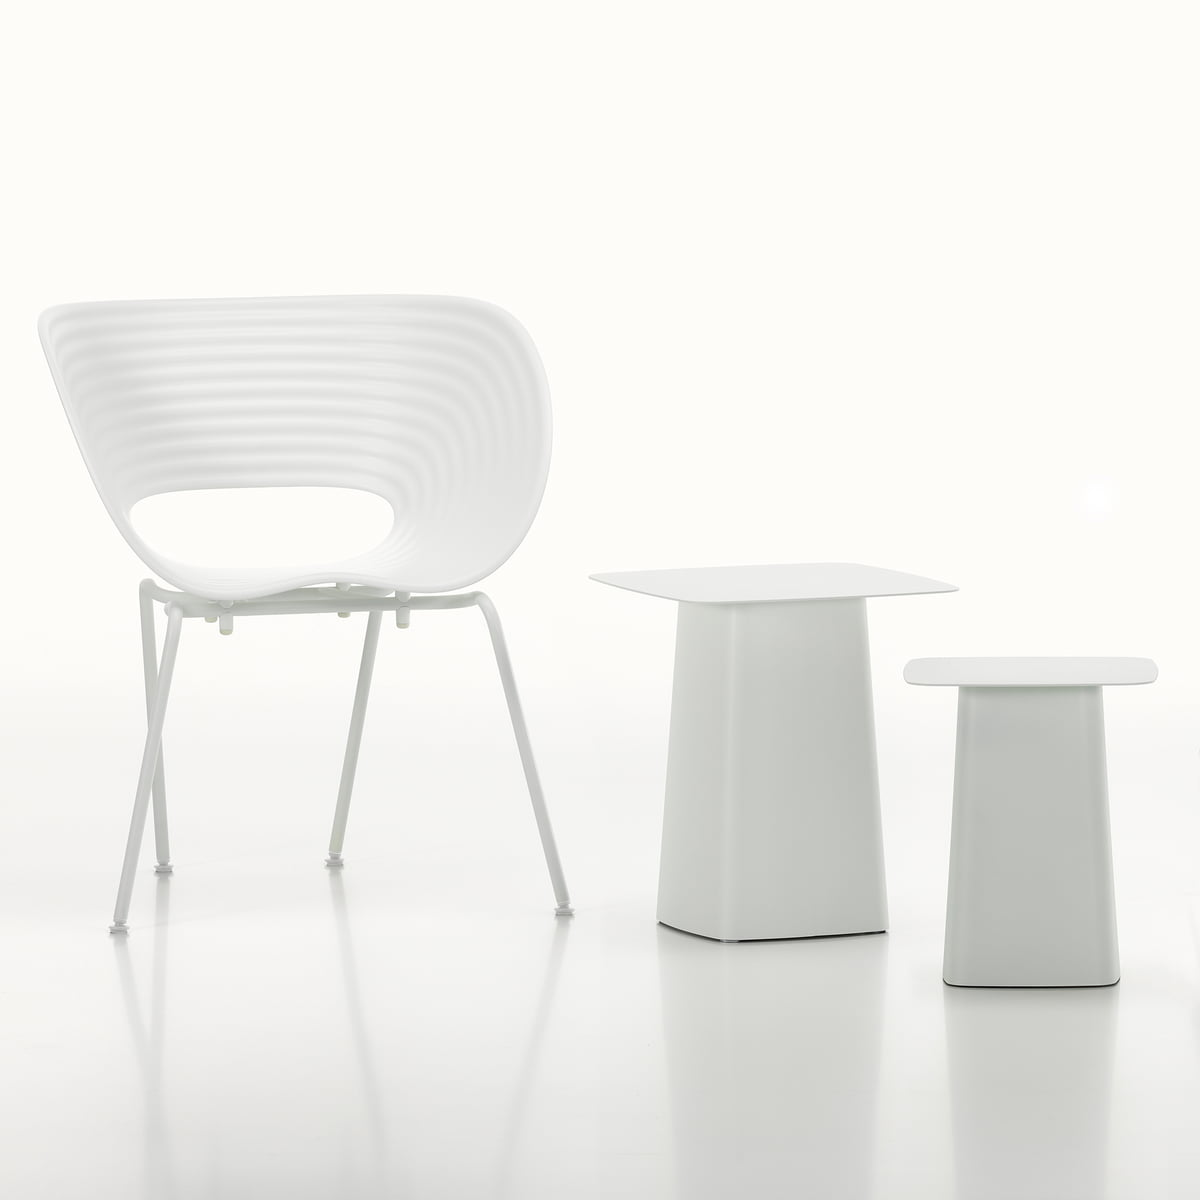 Witte Side Table.Vitra Metal Side Table Outdoor Klein Zacht Licht